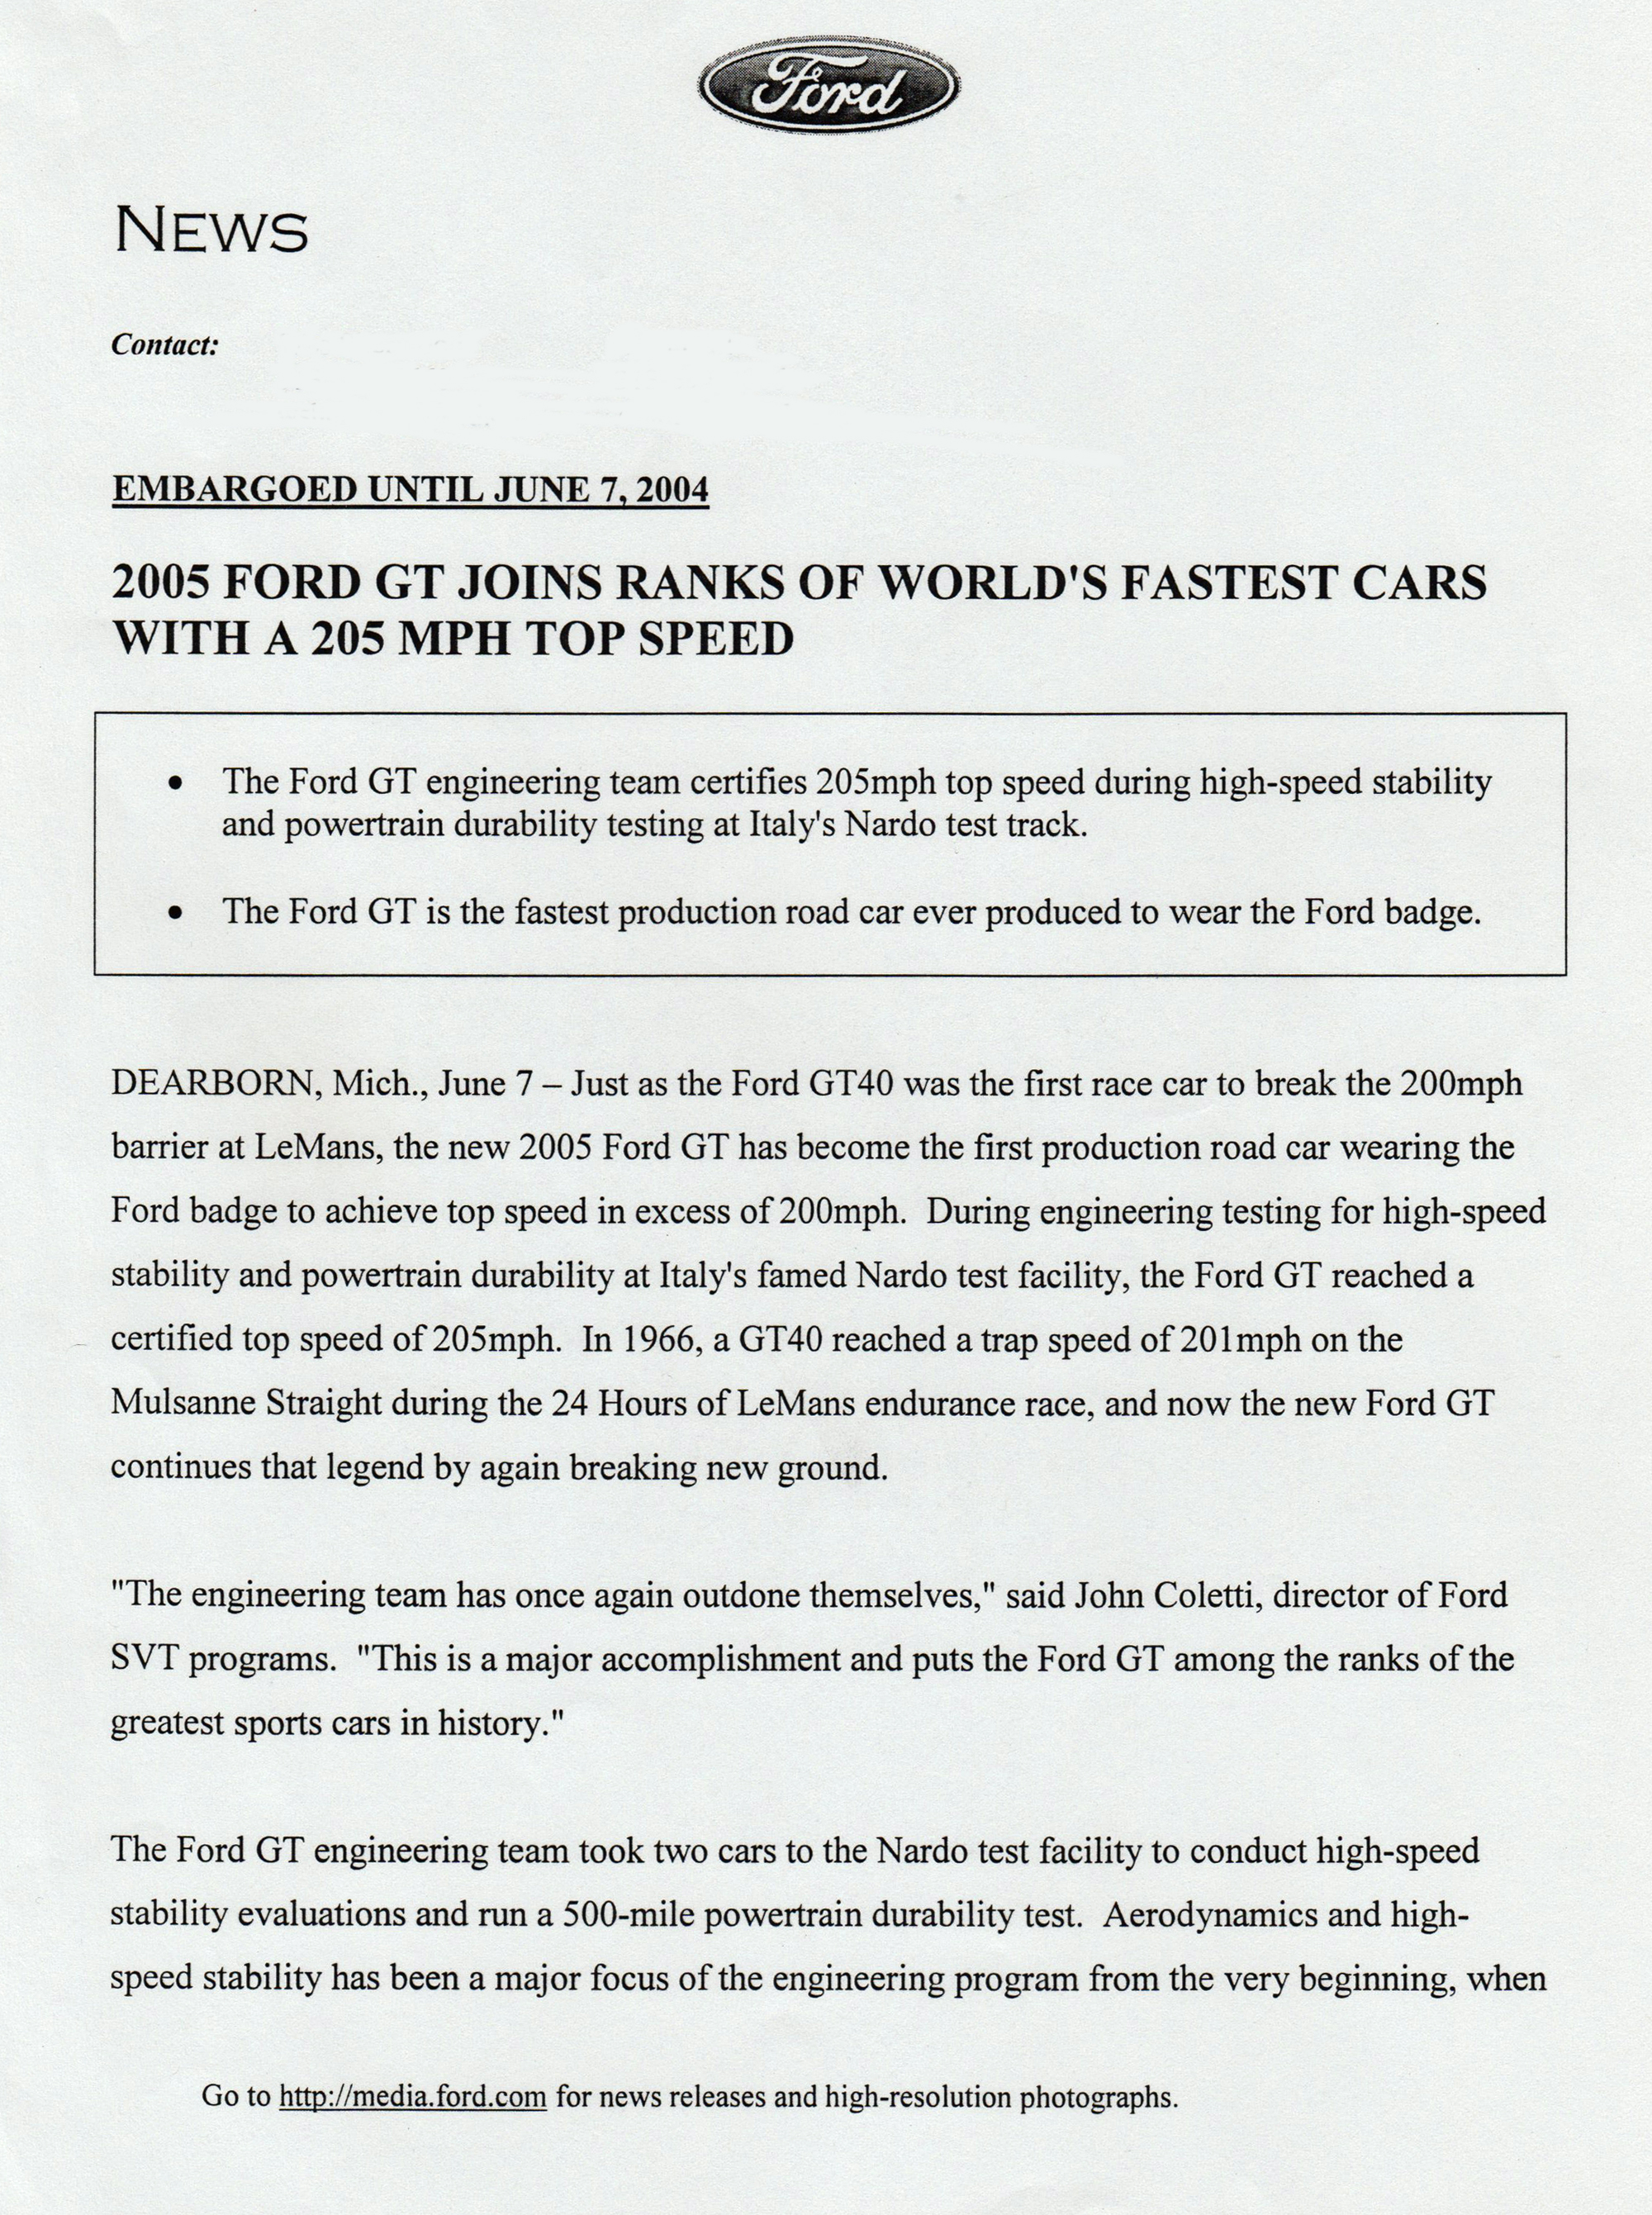 2005 Ford GT Top Speed press release